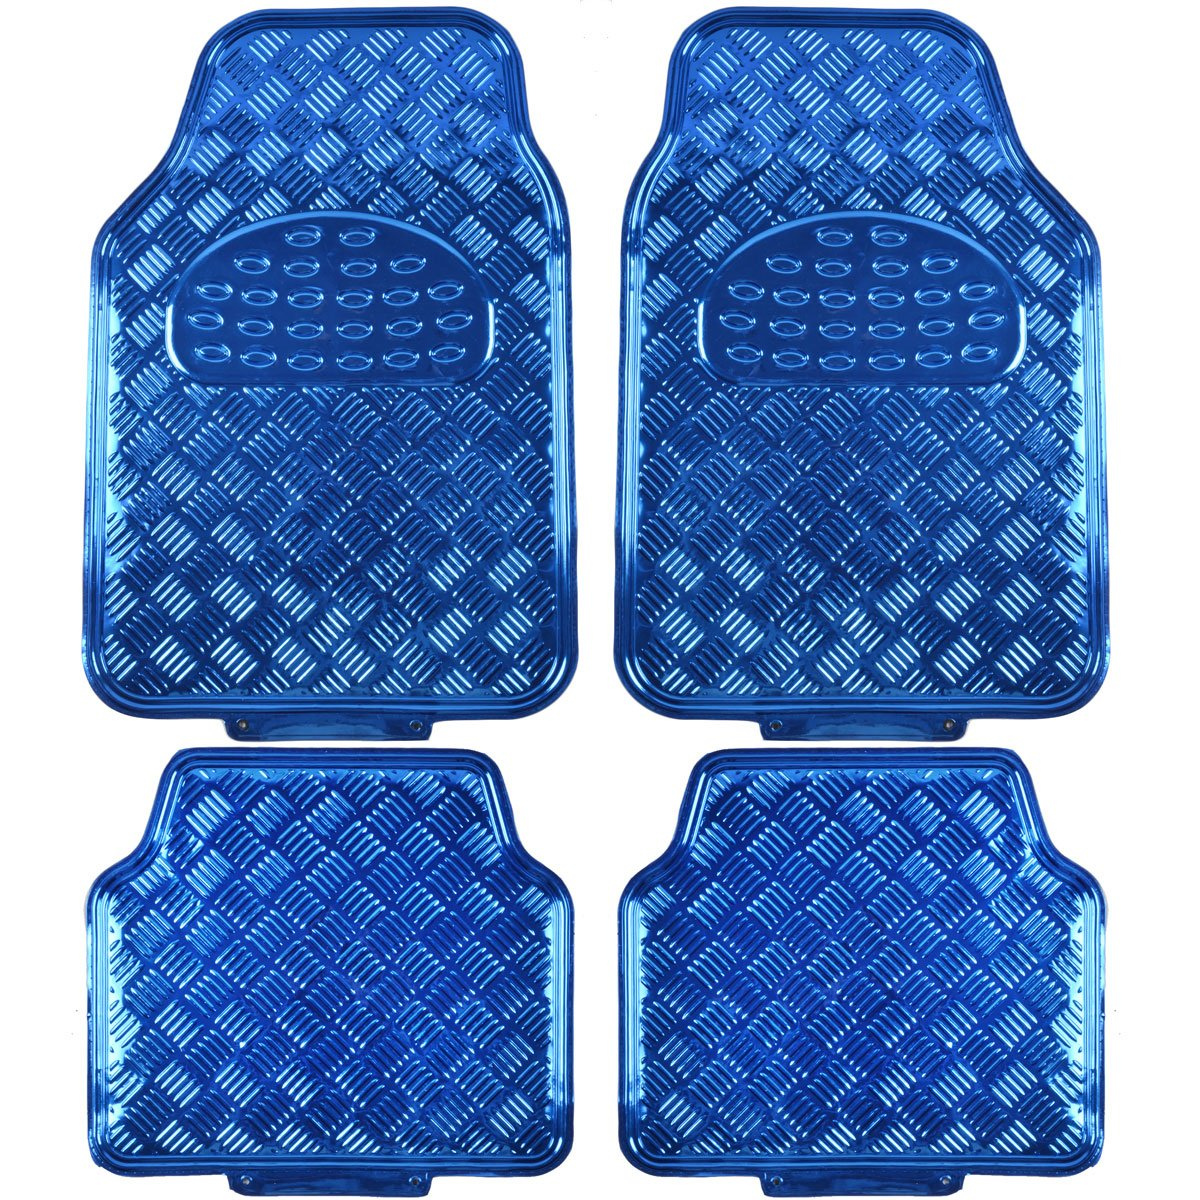 Amazon.com: BDK MT-641-BL Universal Fit 4-Piece Set Metallic Design Car  Floor Mat - Heavy Duty All Weather With Rubber Backing (Blue): Automotive